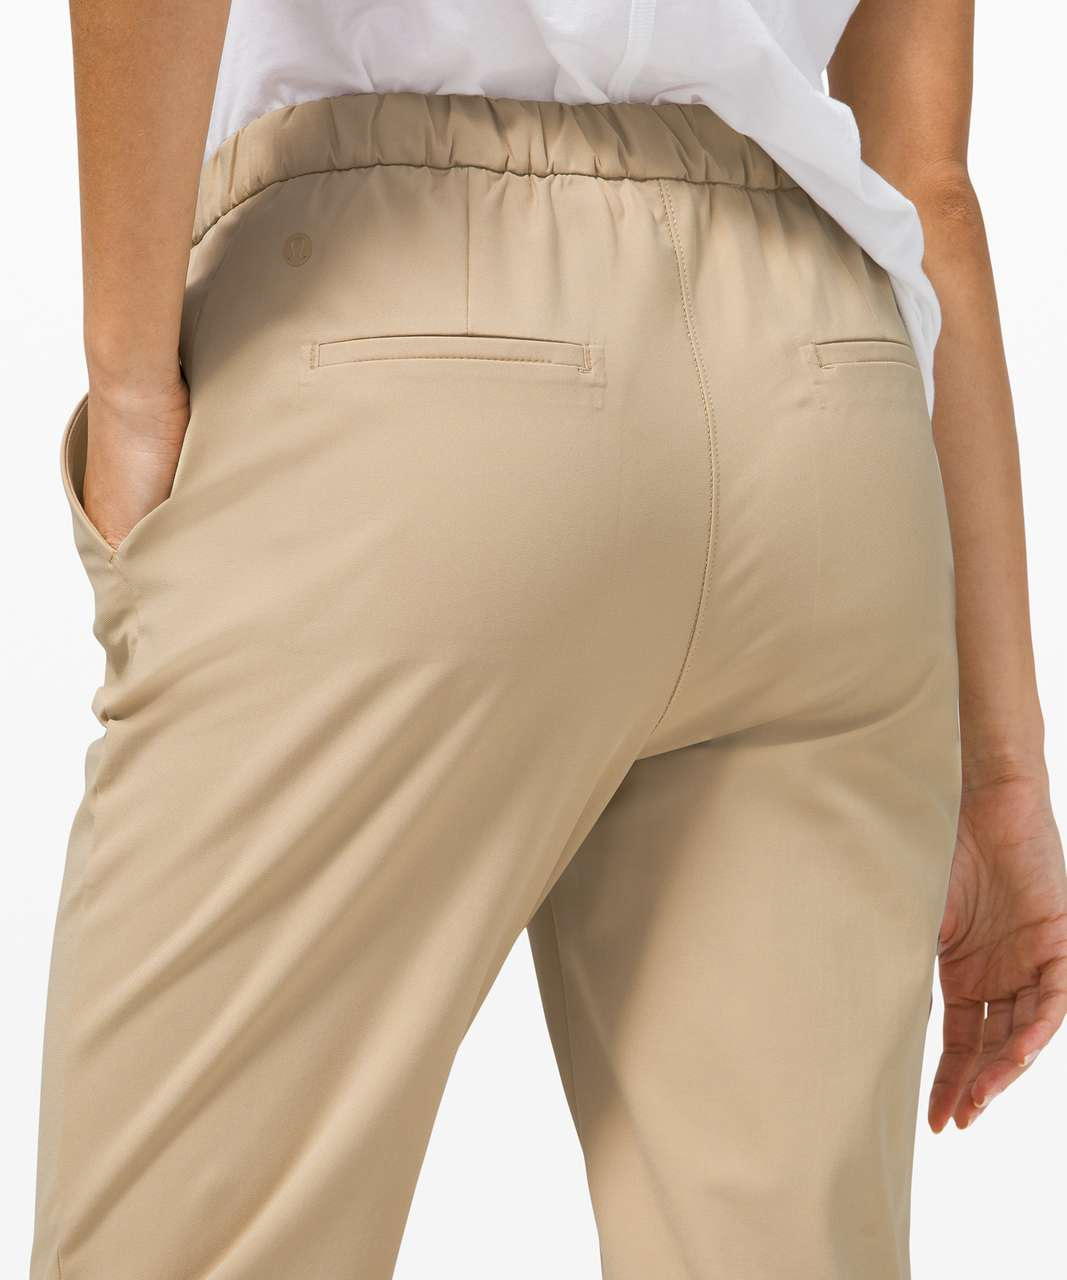 Lululemon Your True Trouser 7/8 Pant - Trench